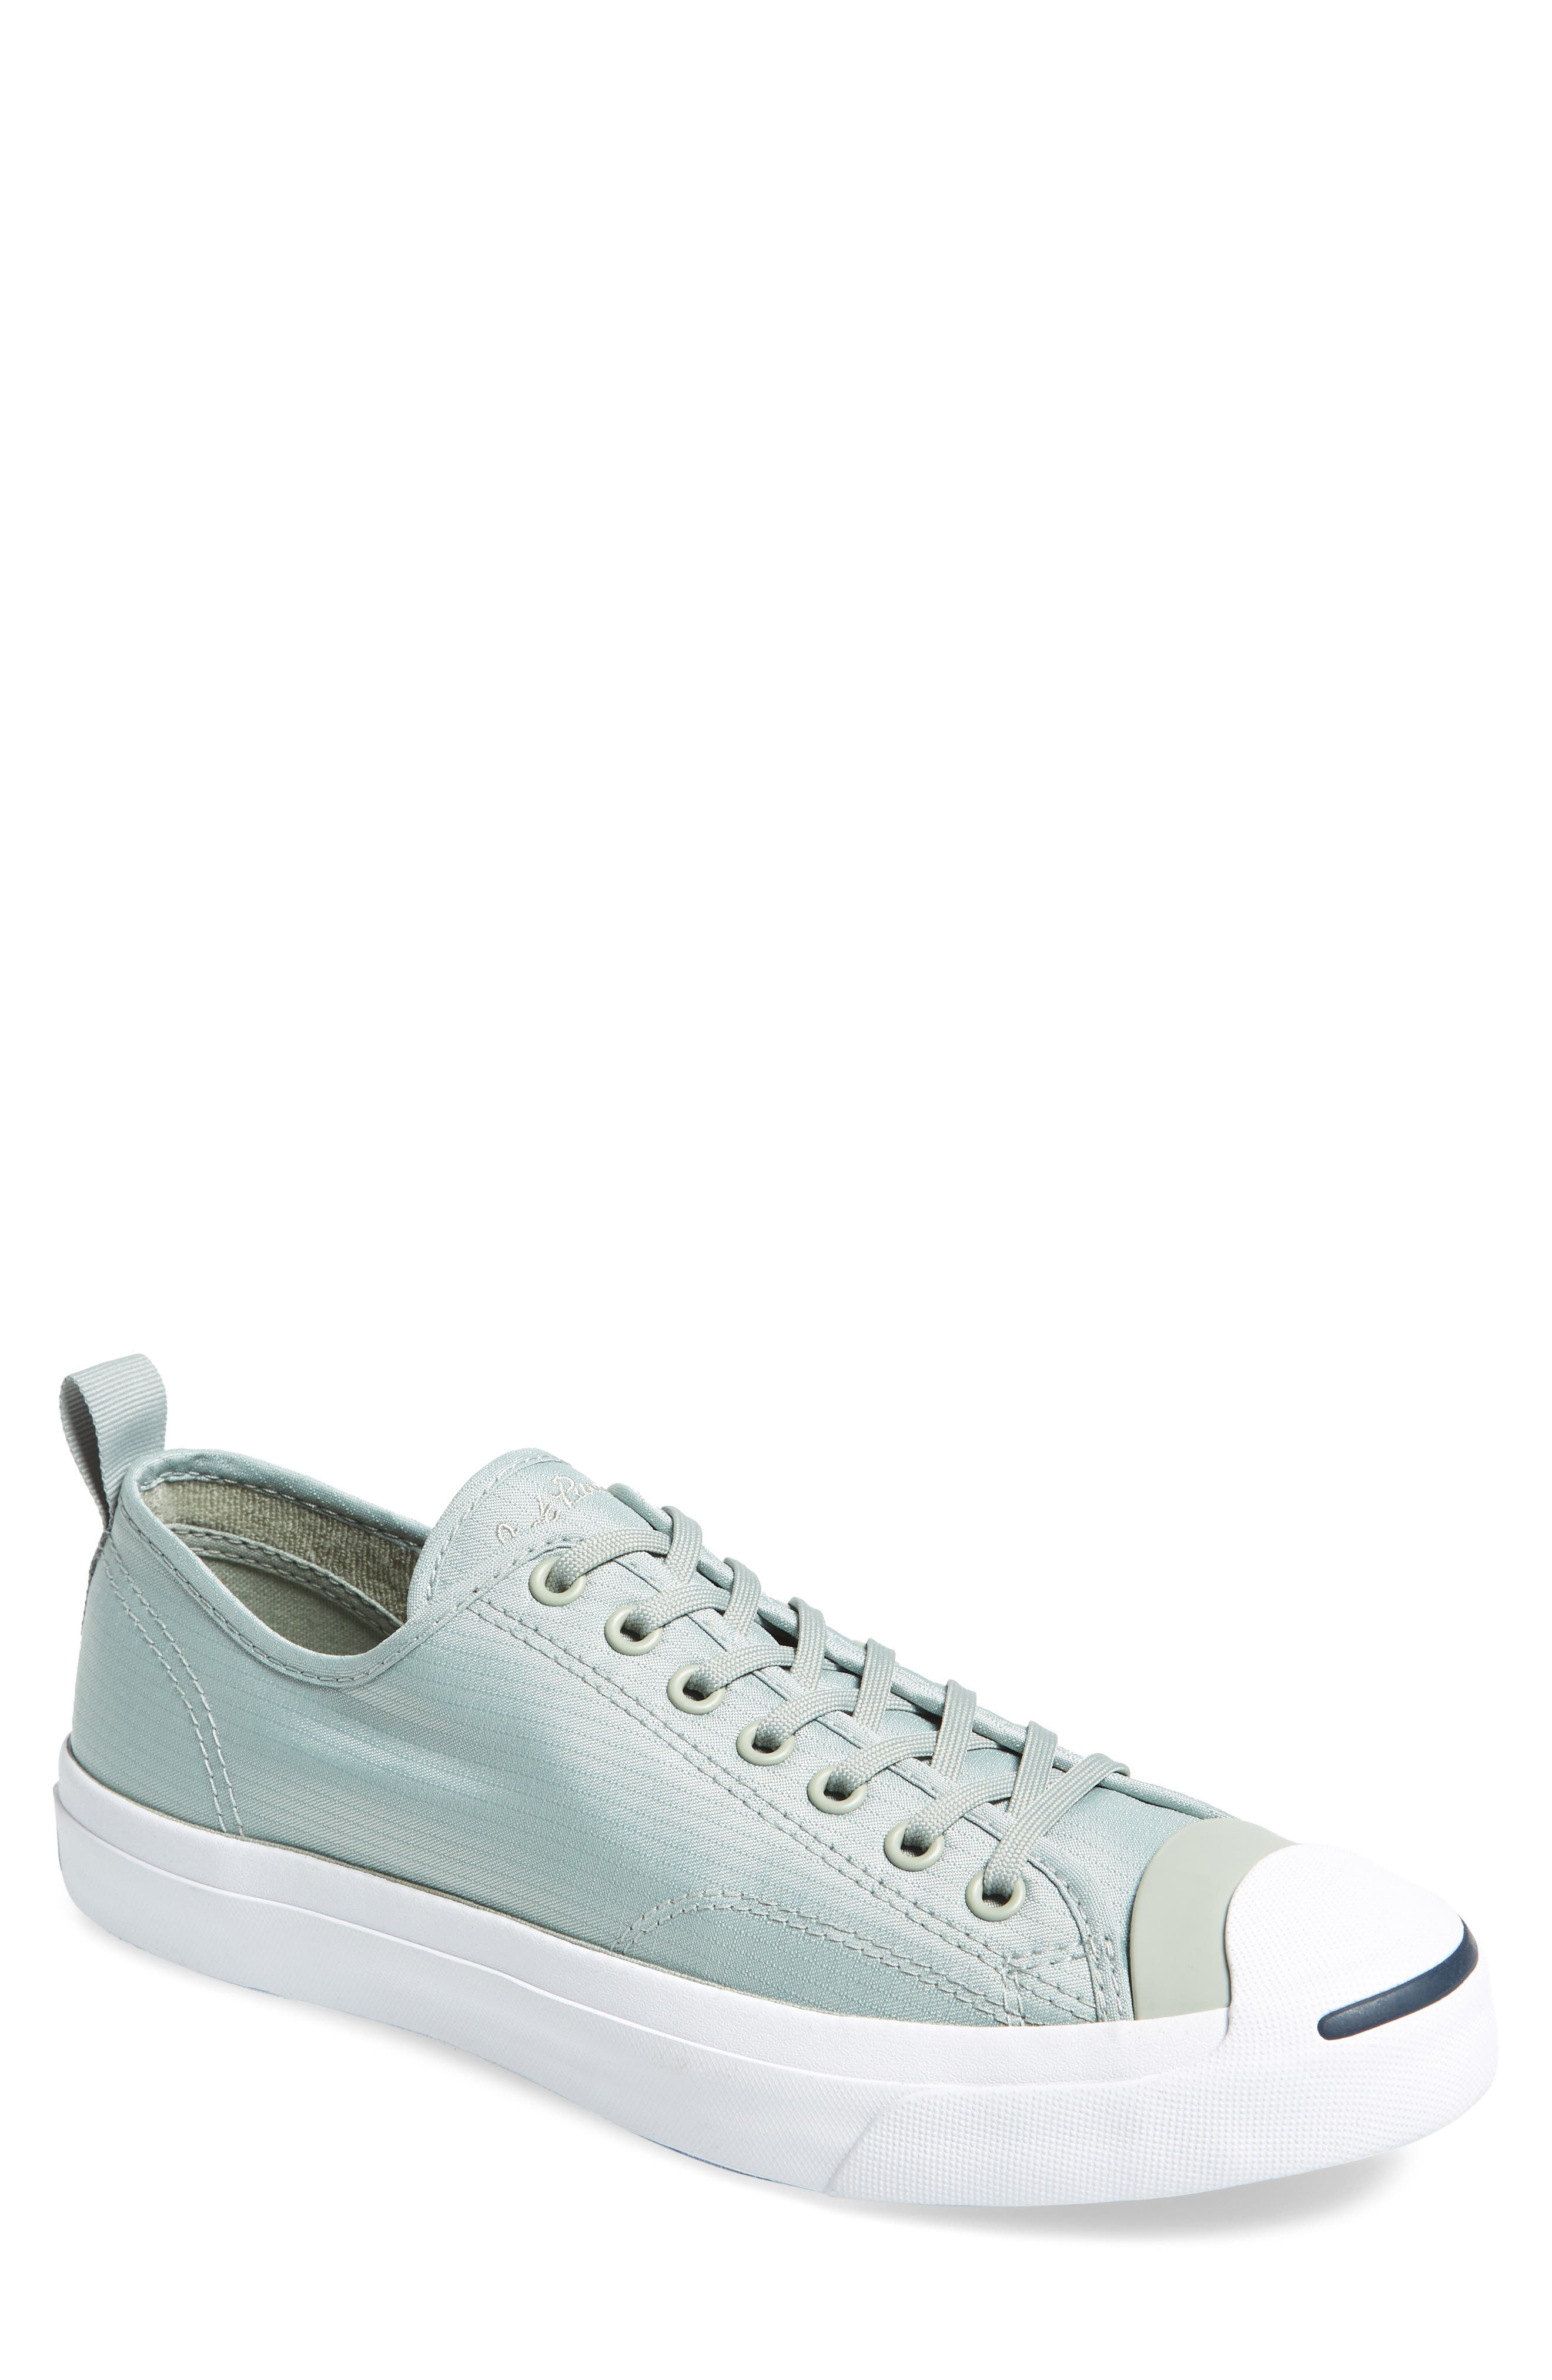 Converse Jack Purcell Ripstop Sneaker (Men)